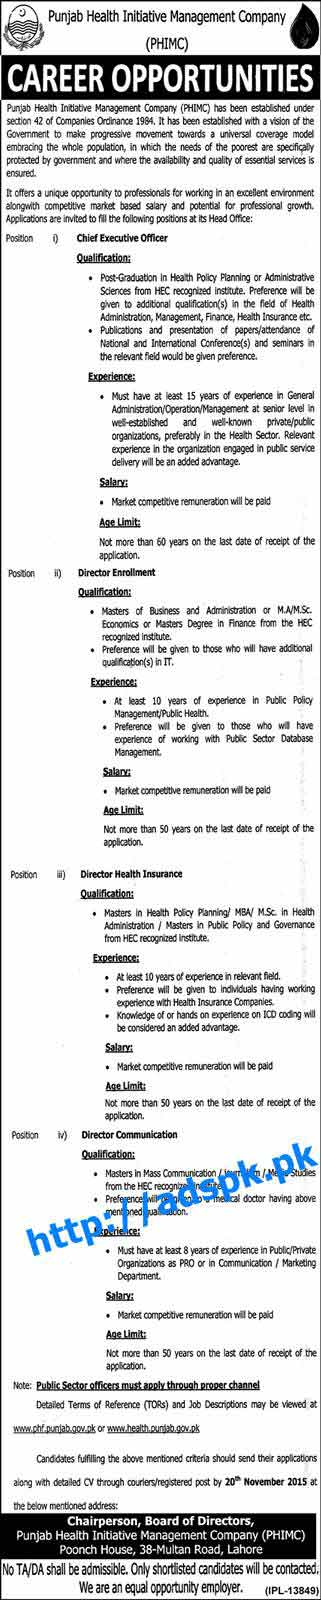 Latest Jobs of Punjab Health Initiative Management Company Jobs 2015 for Chief Executive Officer Directors Enrollment Health Insurance Communication Last Date 20-11-2015 Apply Now